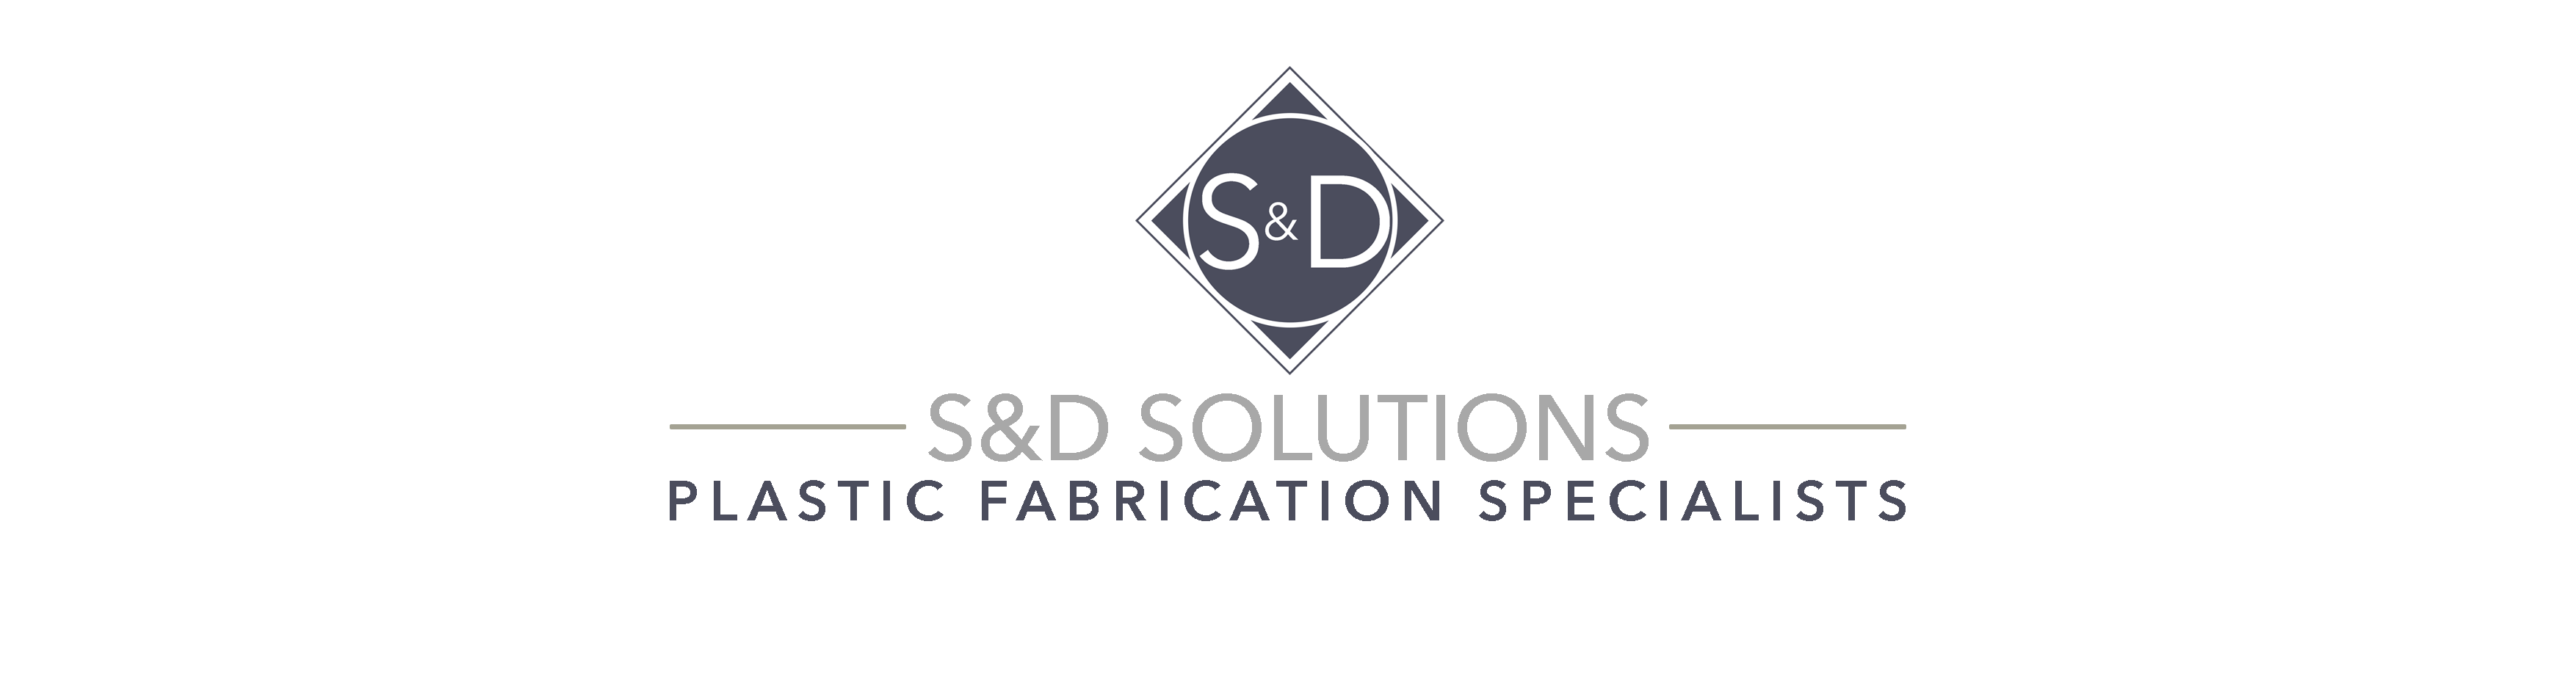 S&D Solutions (UK) Ltd